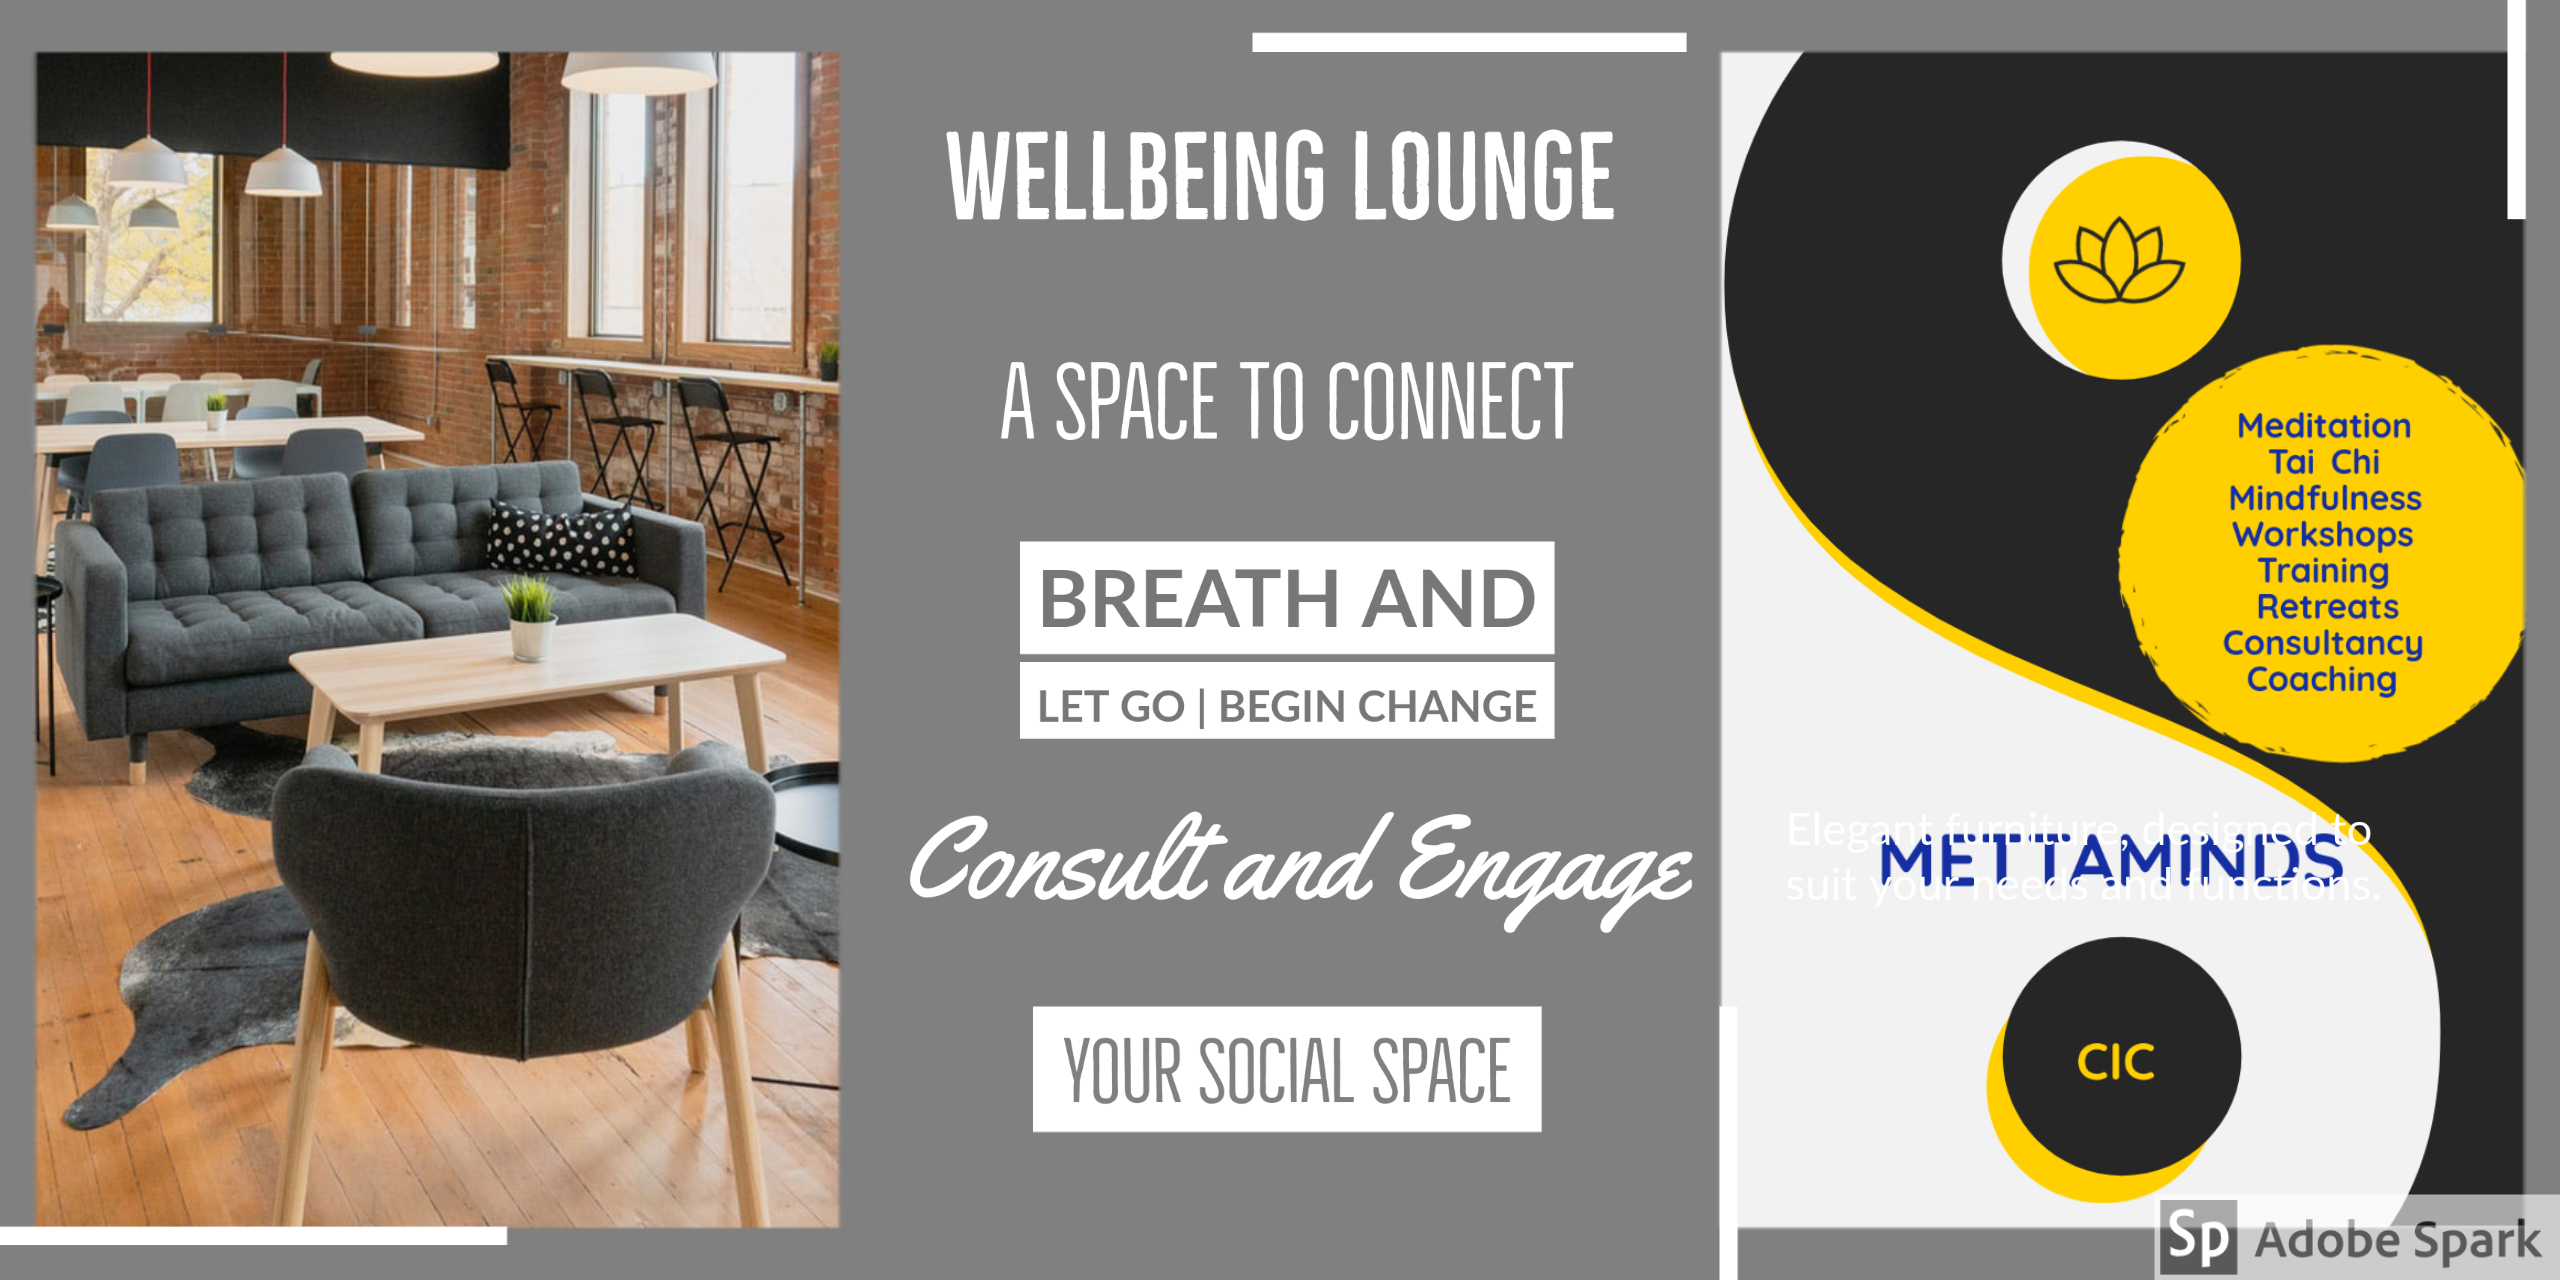 wellbeing lounge.jpg